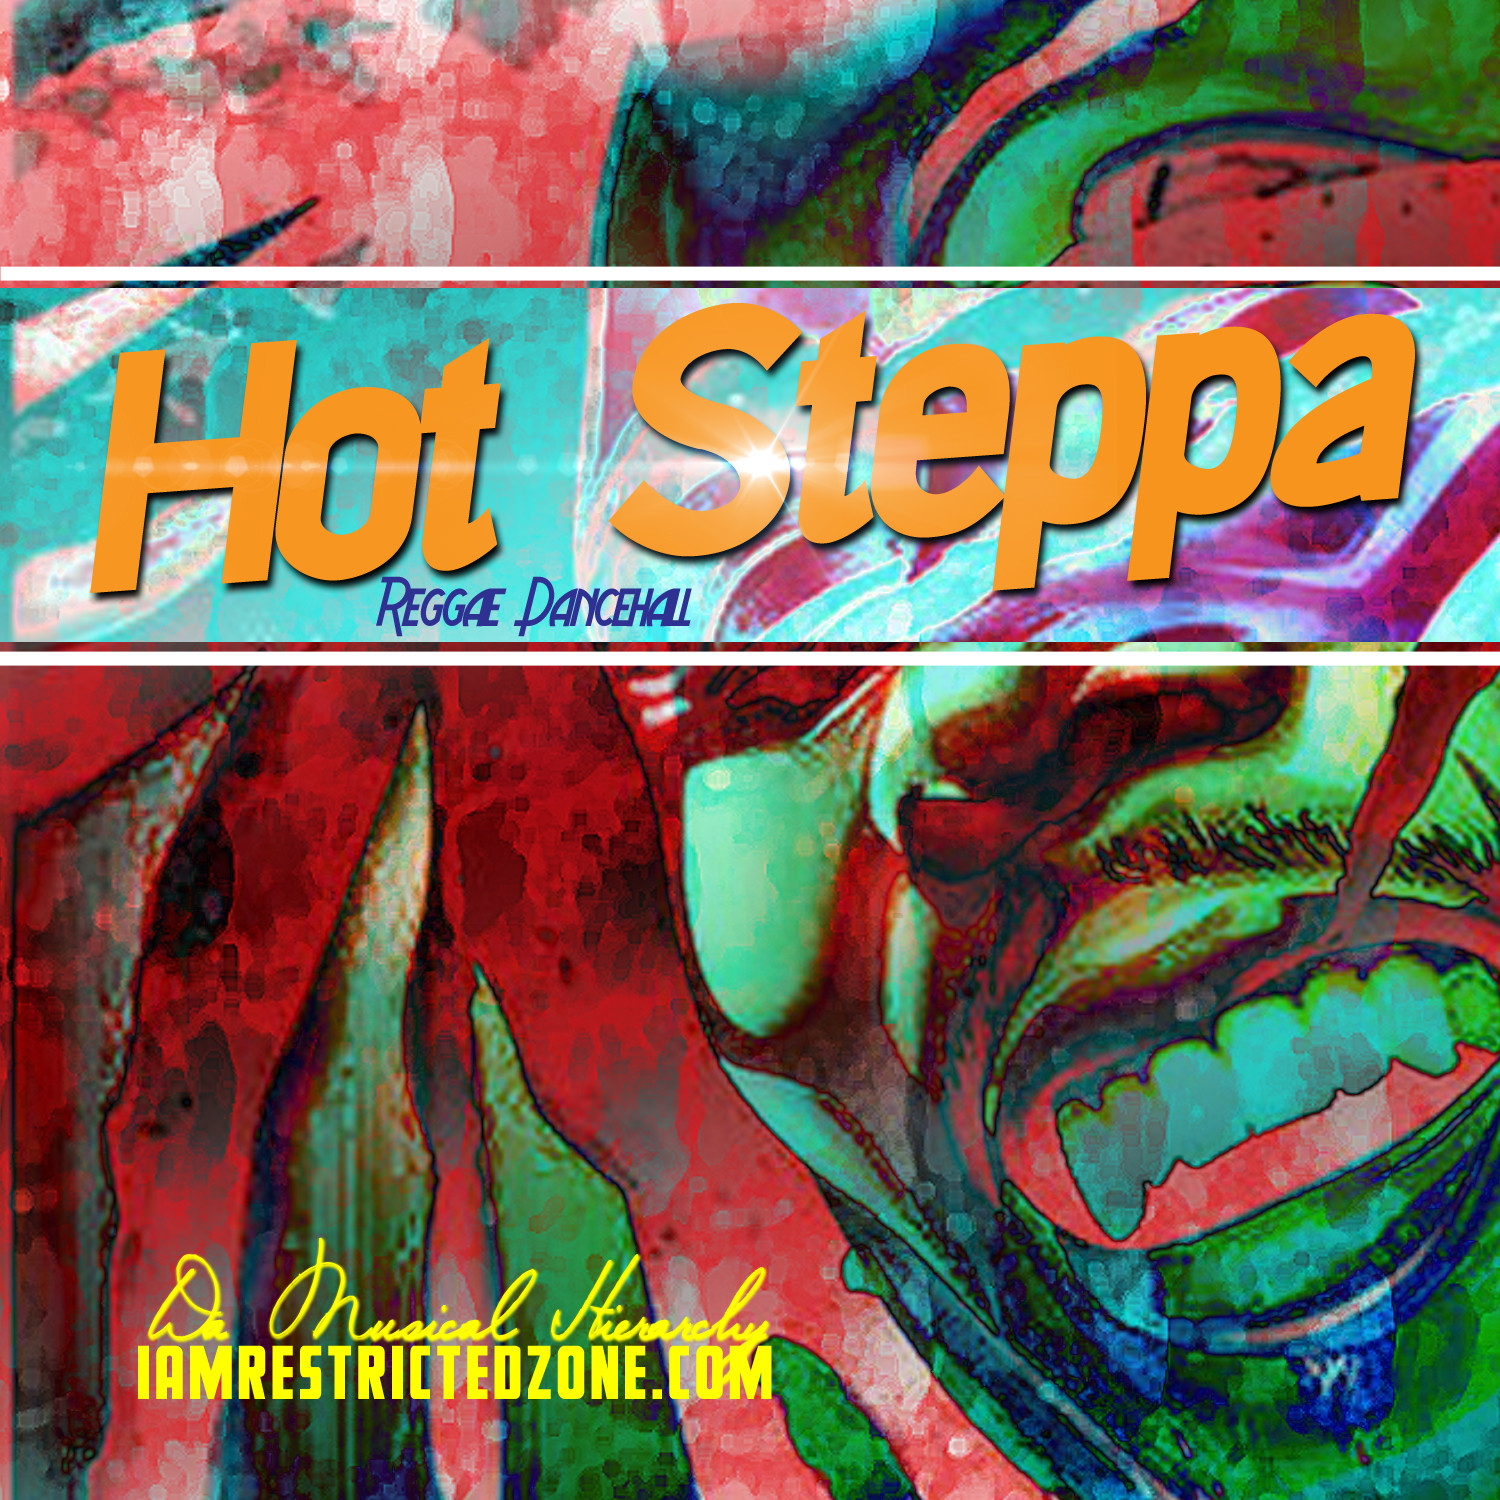 Hot Steppa - Restricted Zone